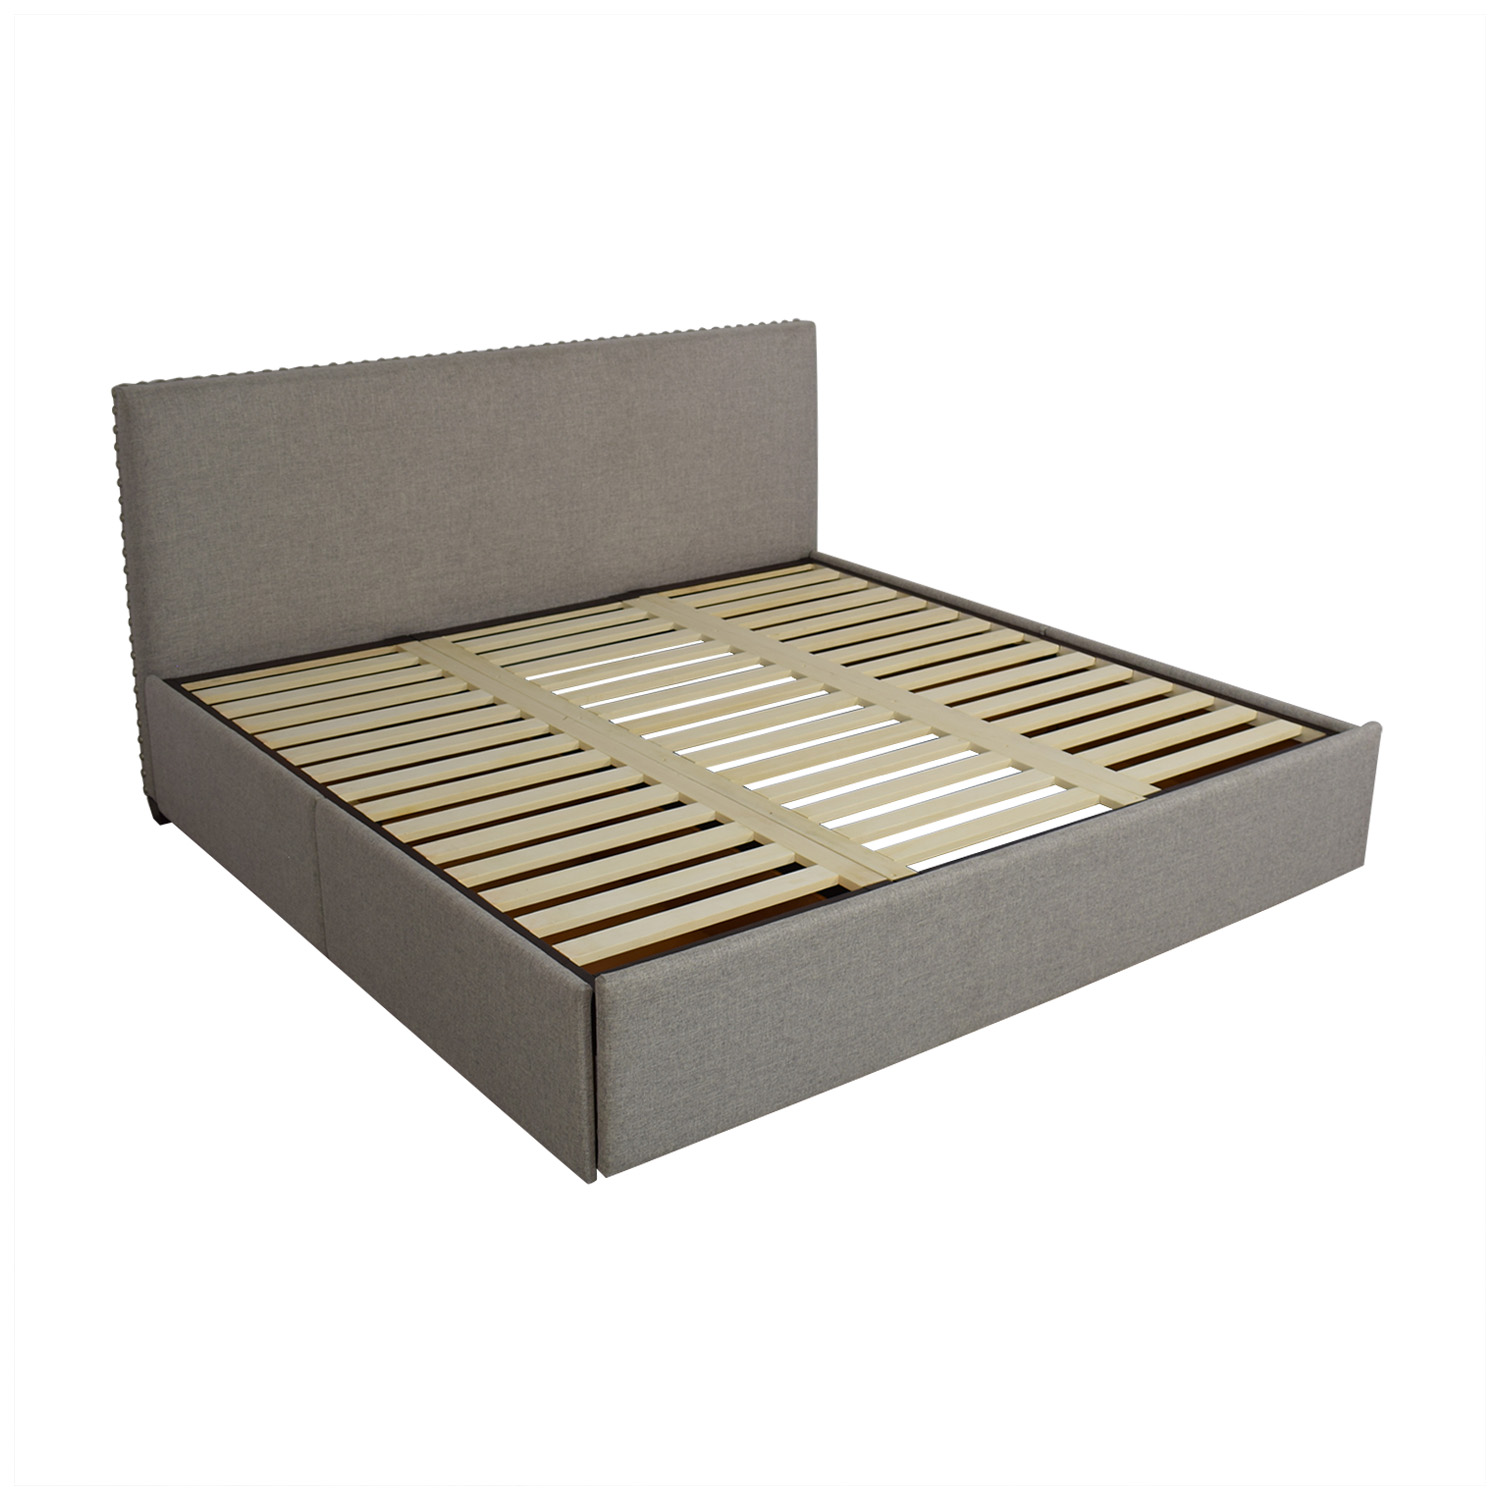 buy Pottery Barn Raleigh King Storage Bed Pottery Barn